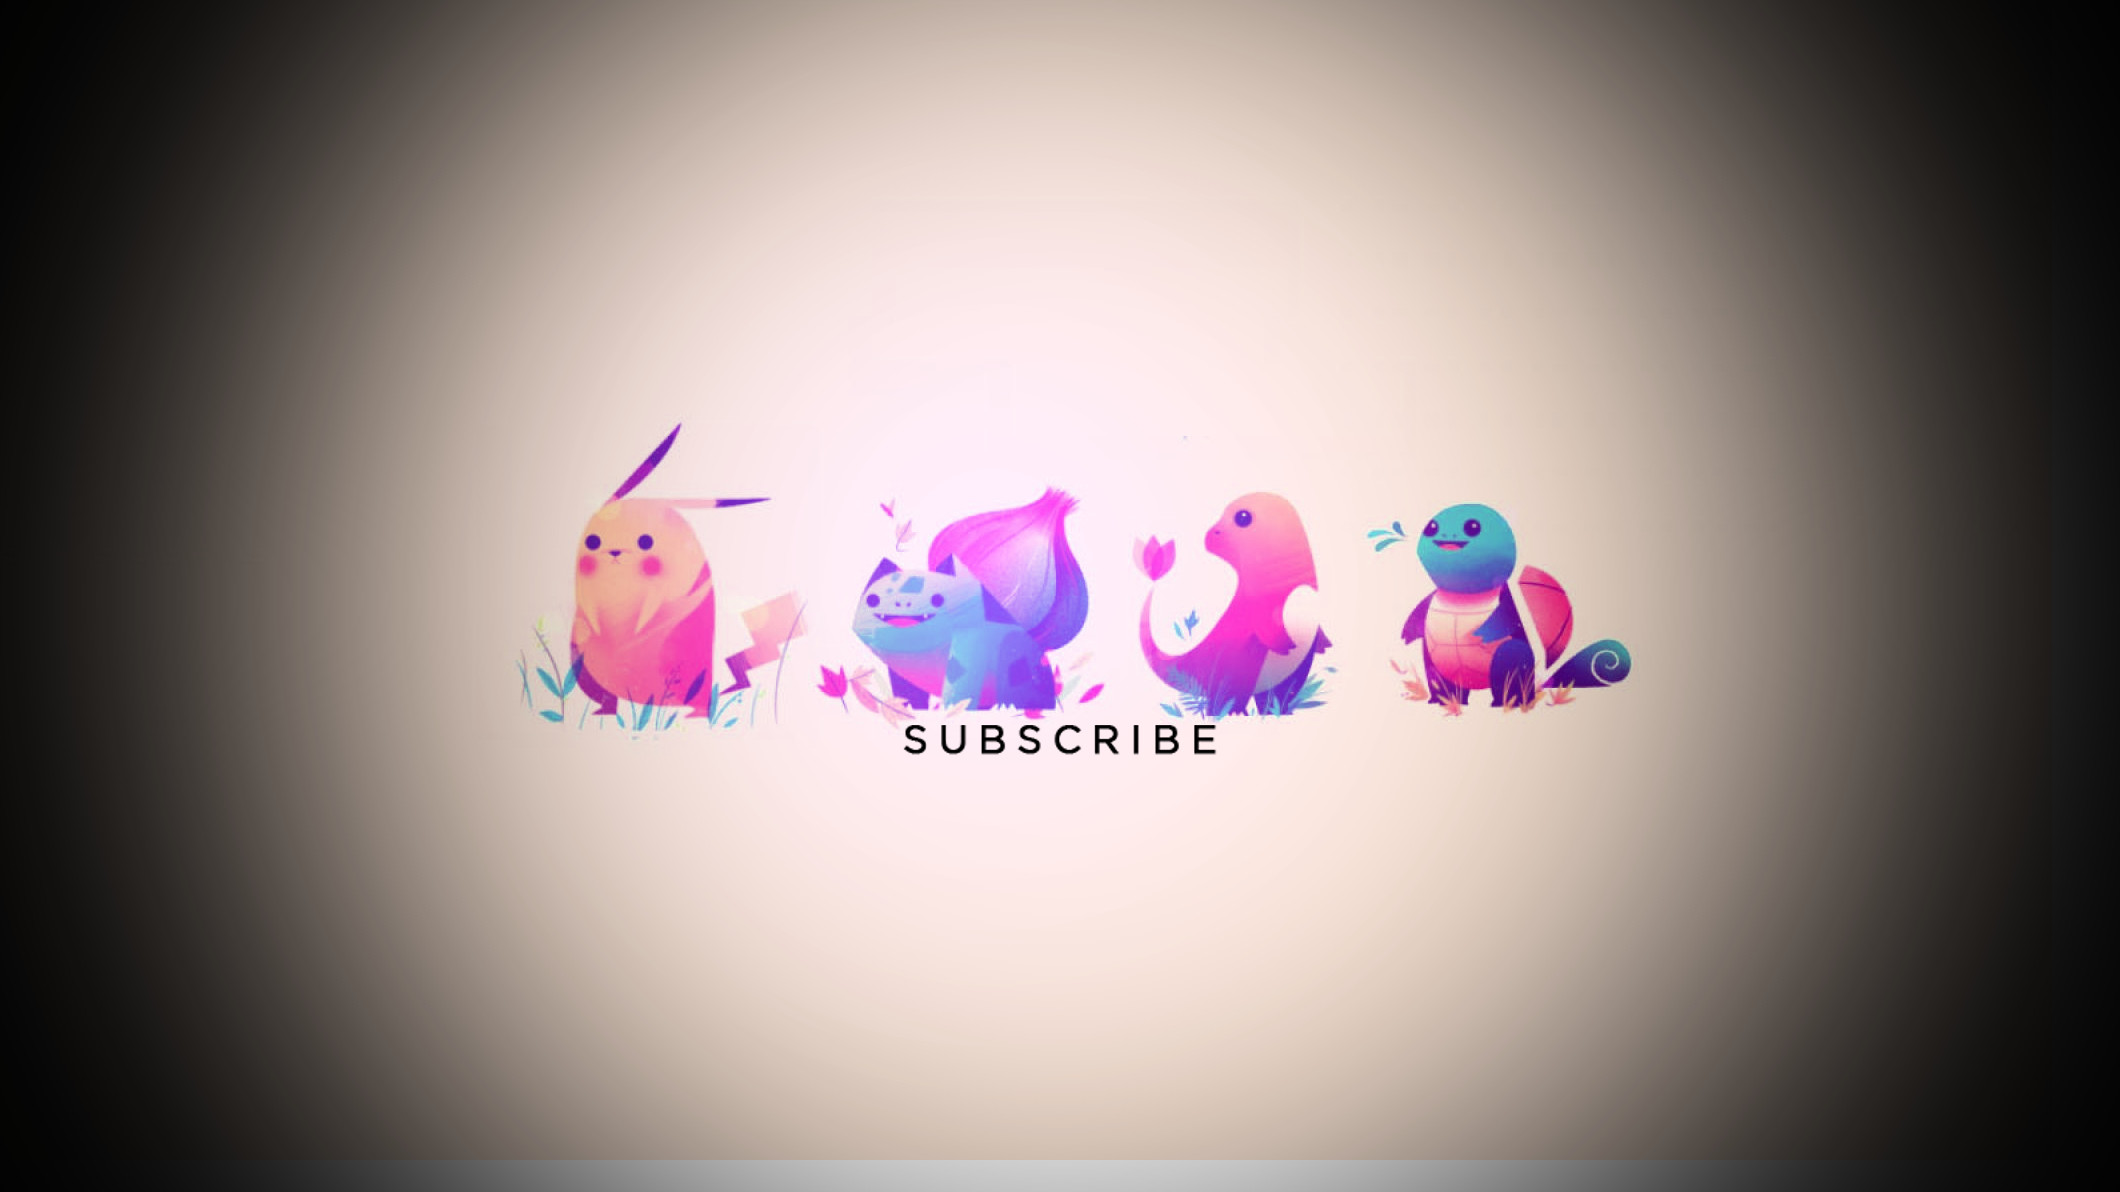 Youtube Channel Wallpaper Posted By Ryan Mercado